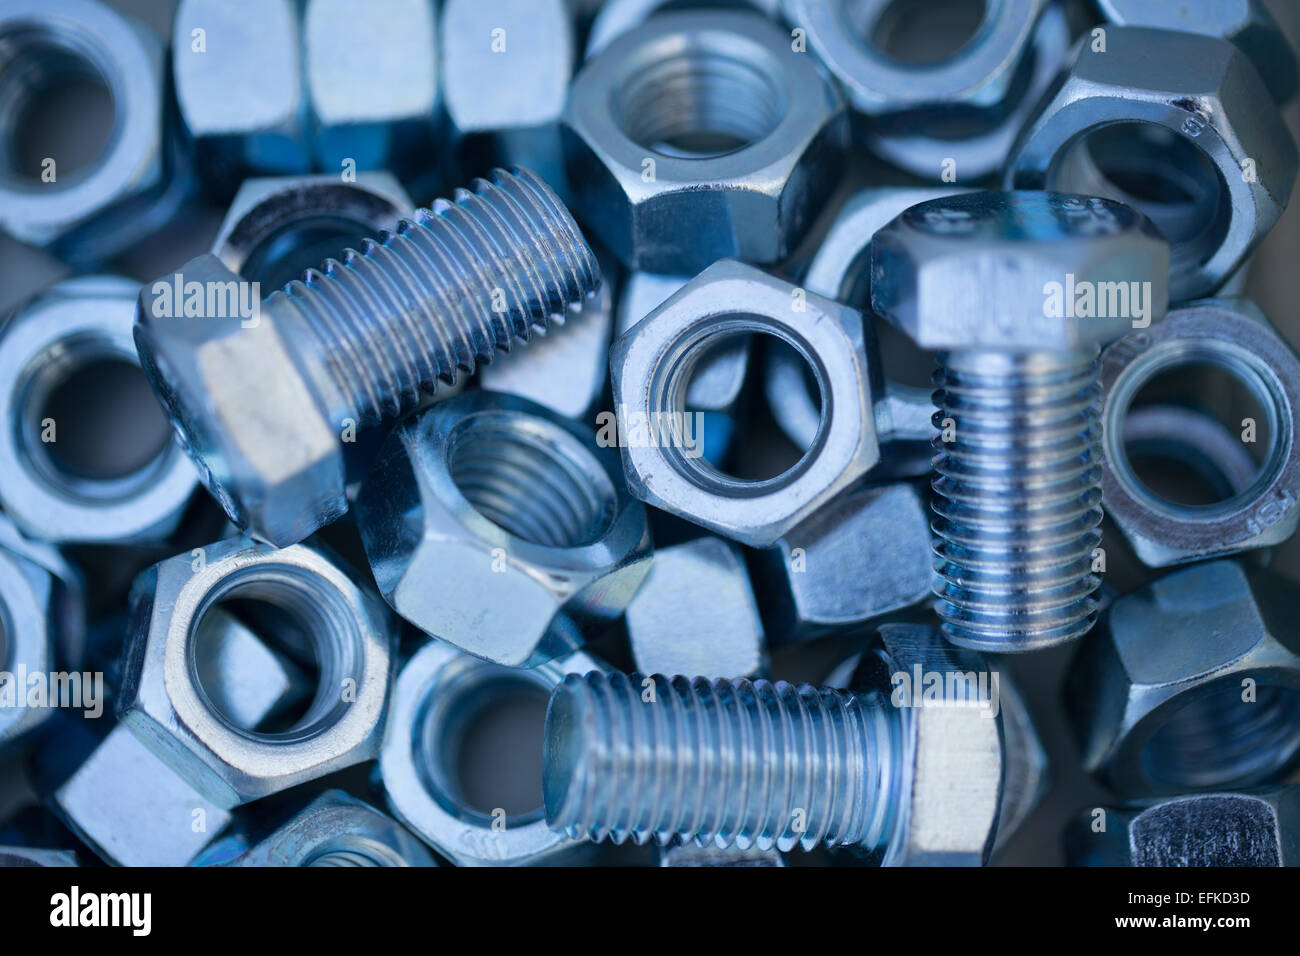 Several Hexagon nuts and Hexagon bolts - Stock Image